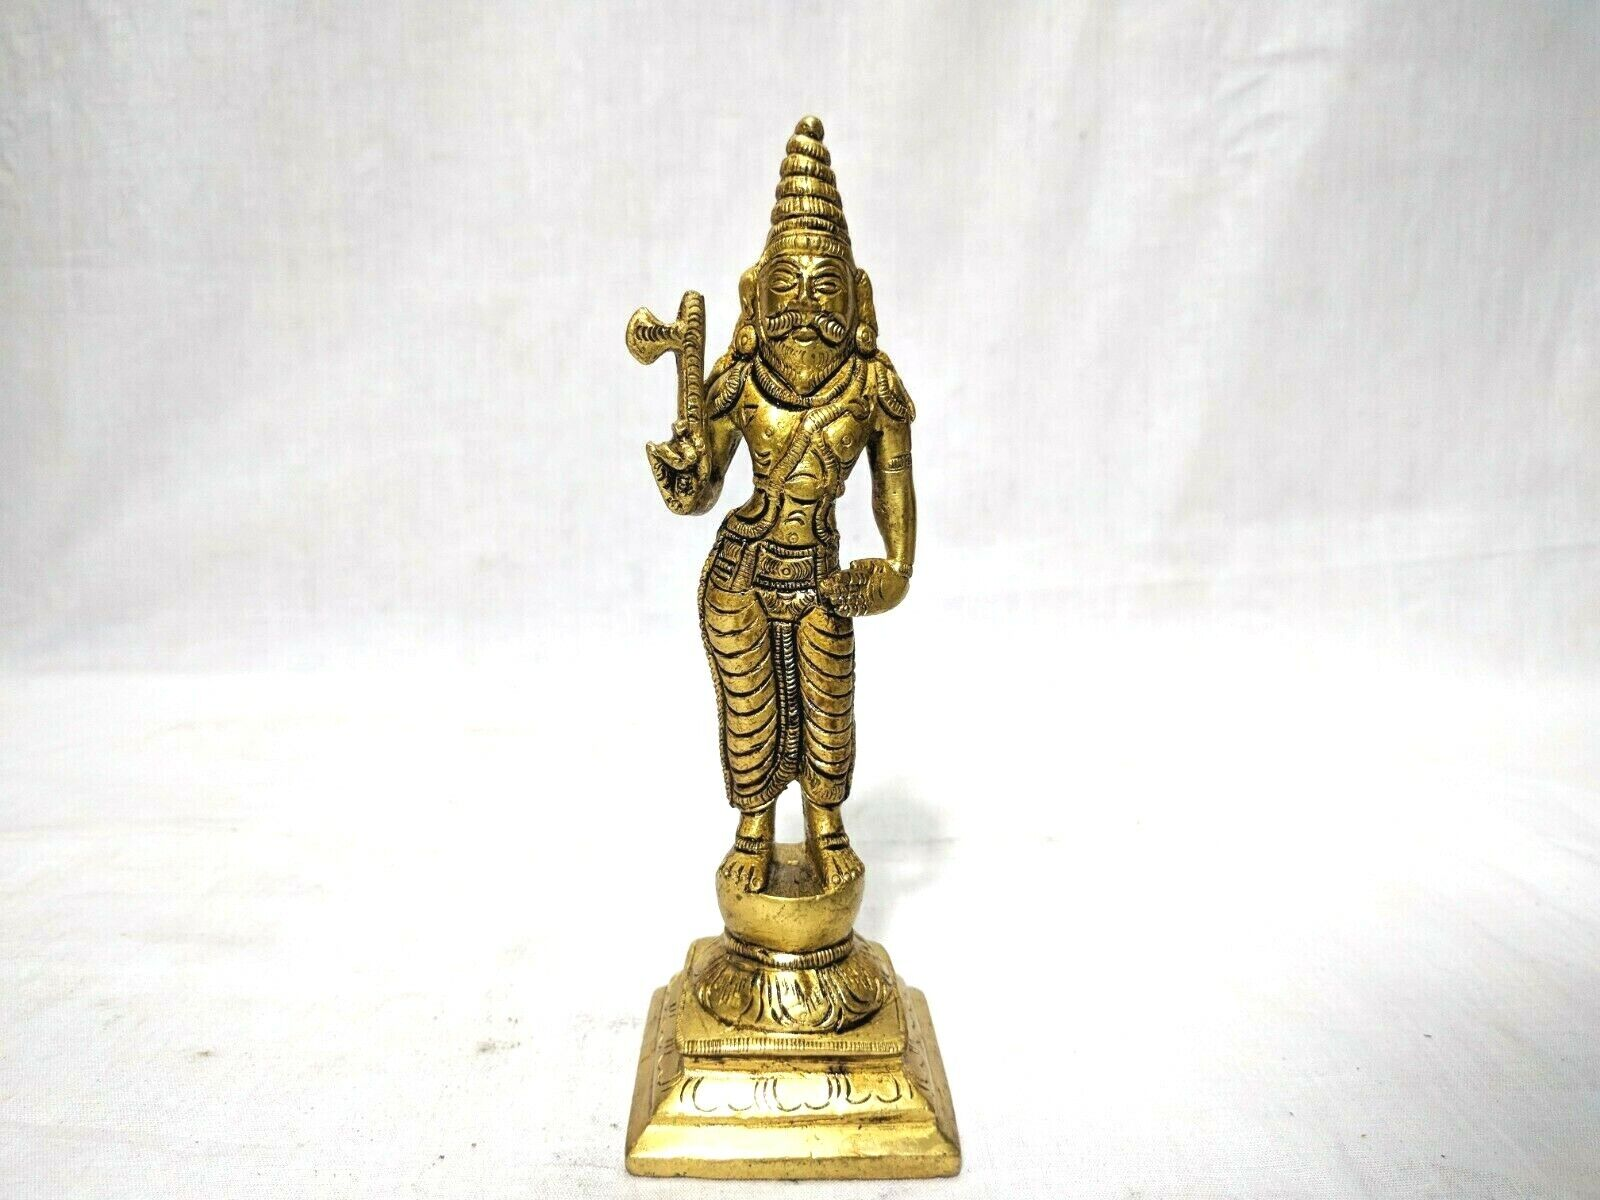 Dashavatar Brass Statue Vishnu Ten Avatar God Pooja Figurine Temple Art Decor Без бренда - фотография #7